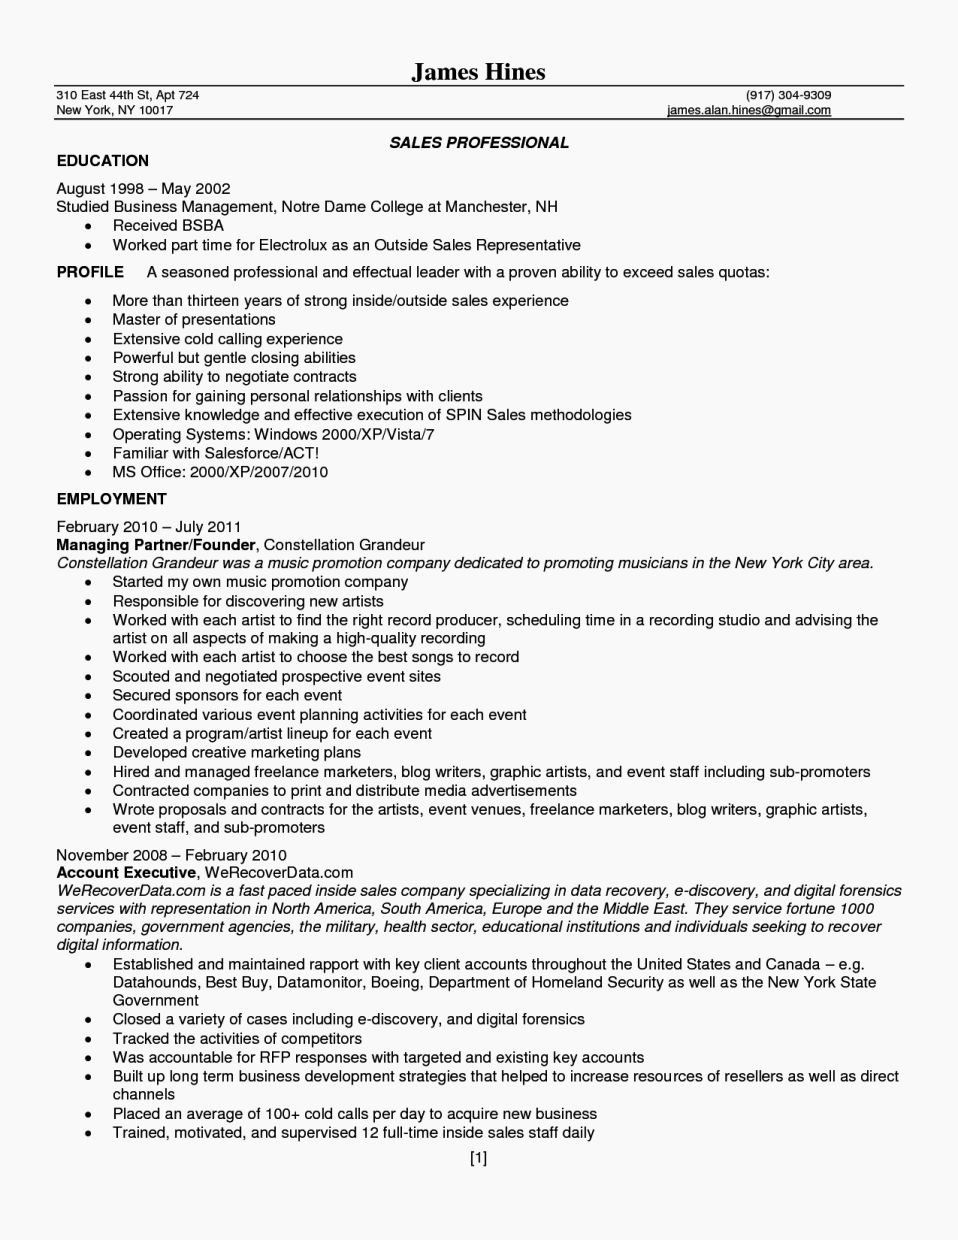 16 Year Old Resume Inspirational Cv Examples 16 Year Old Resume Template Sales Resume Examples Job Resume Samples Teacher Resume Template